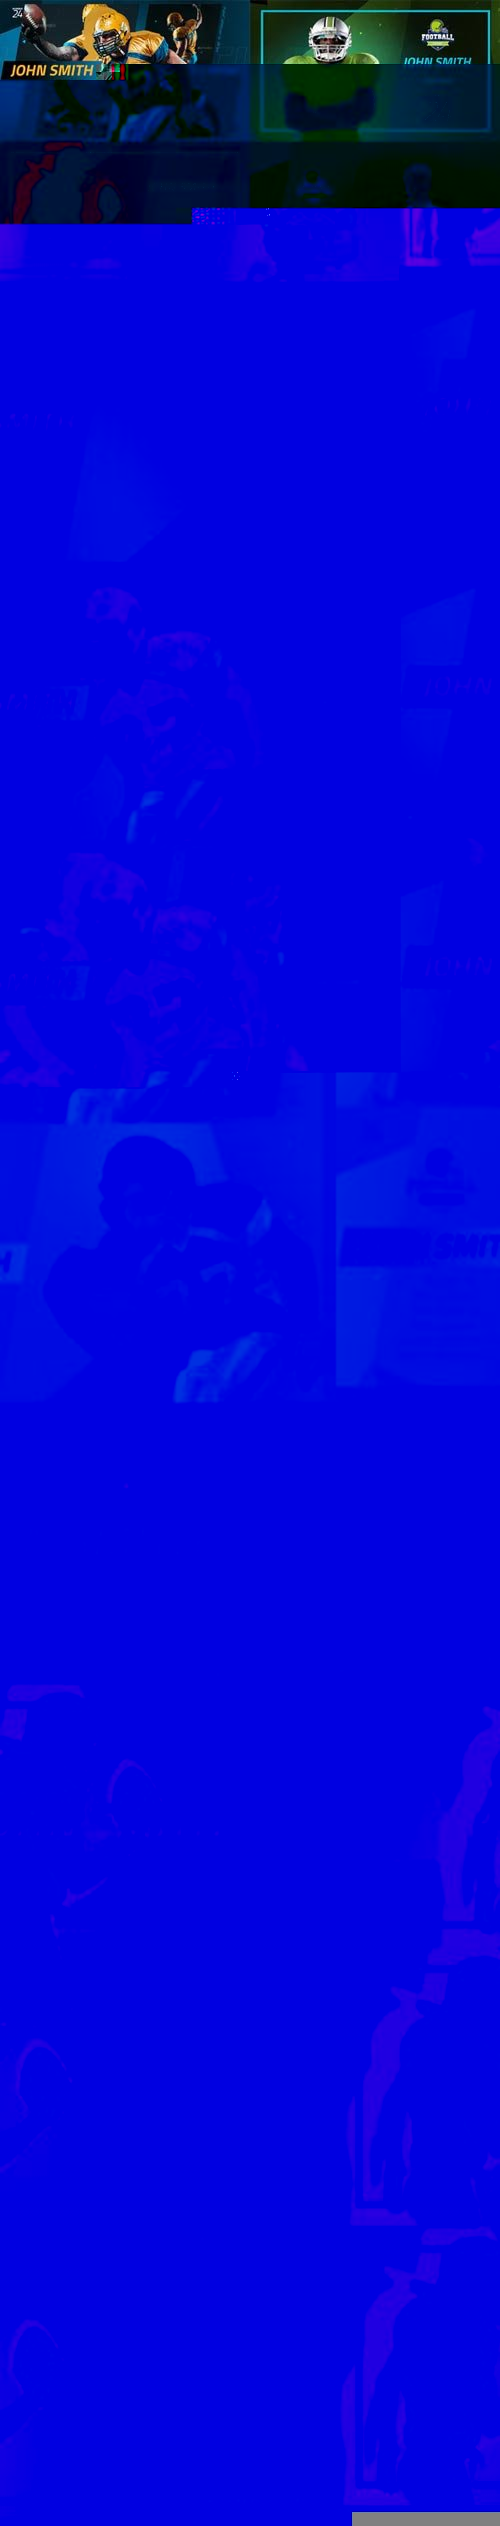 Videohive - Sport Player Profiles Pack - 25591541